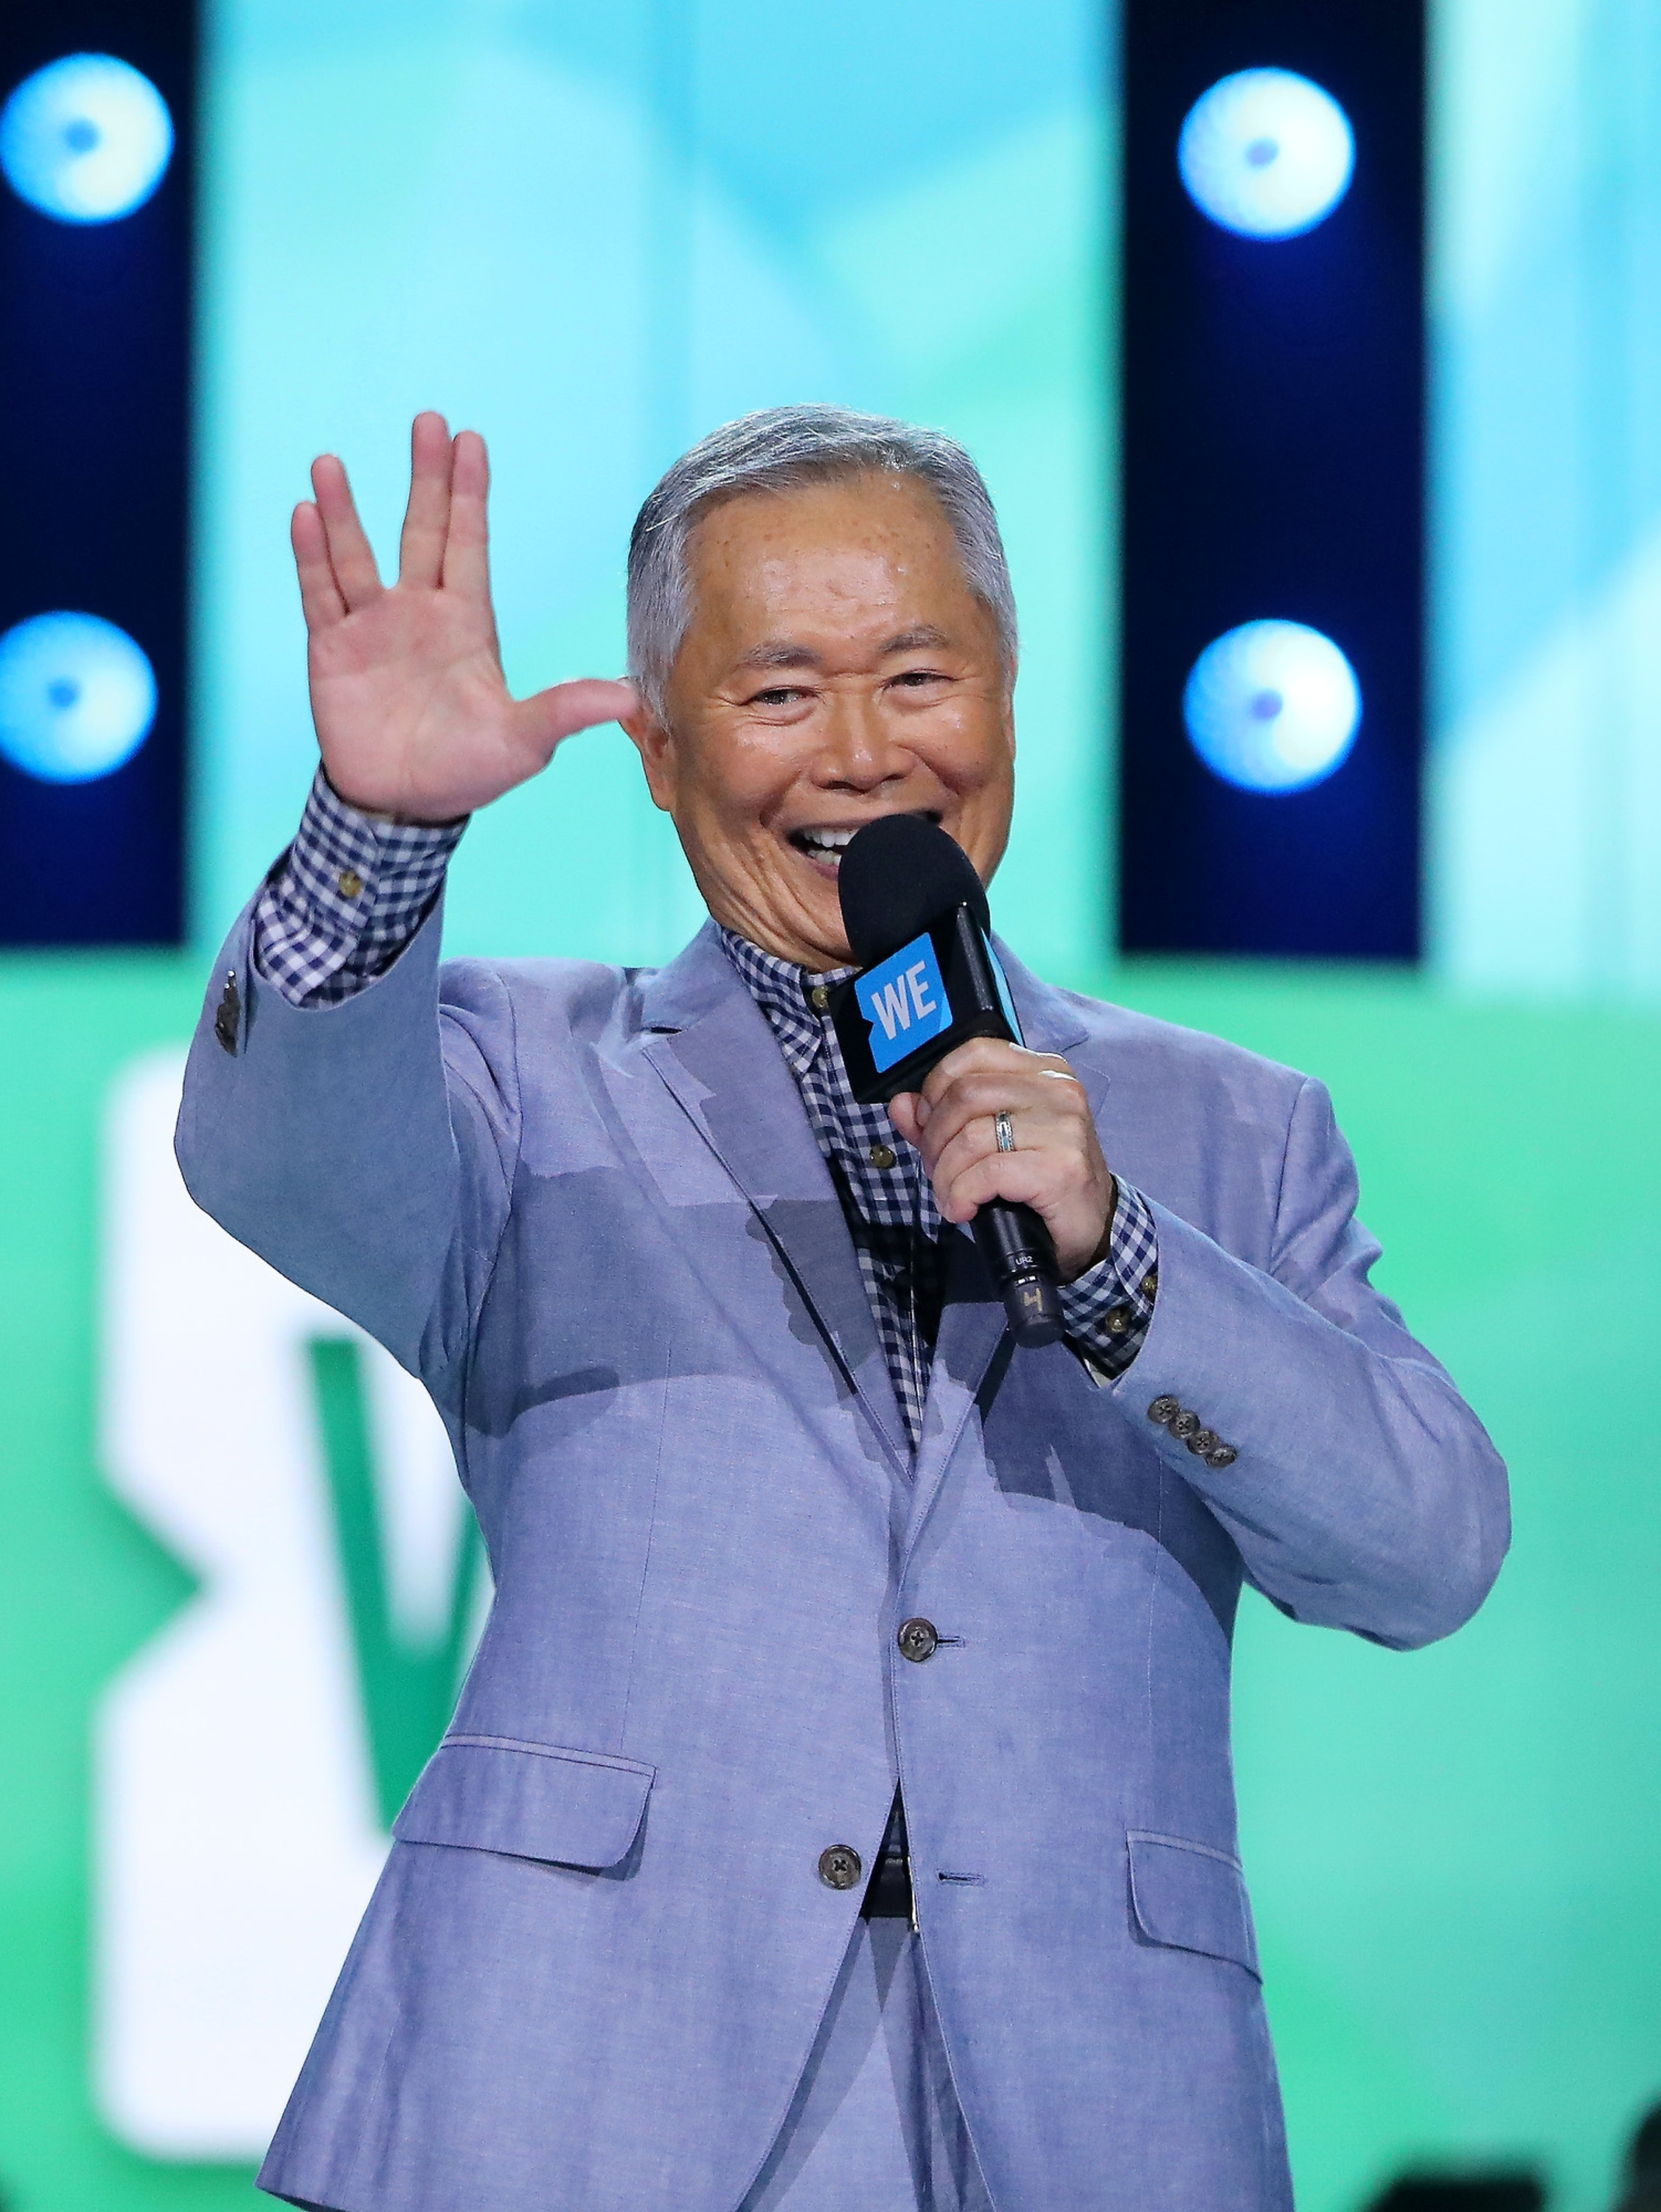 ST PAUL, MN - SEPTEMBER 20: George Takei speaks during WE Day Minnesota at Xcel Energy Center on September 20, 2016 in St Paul, Minnesota. (Photo by Adam Bettcher/Getty Images for WE)